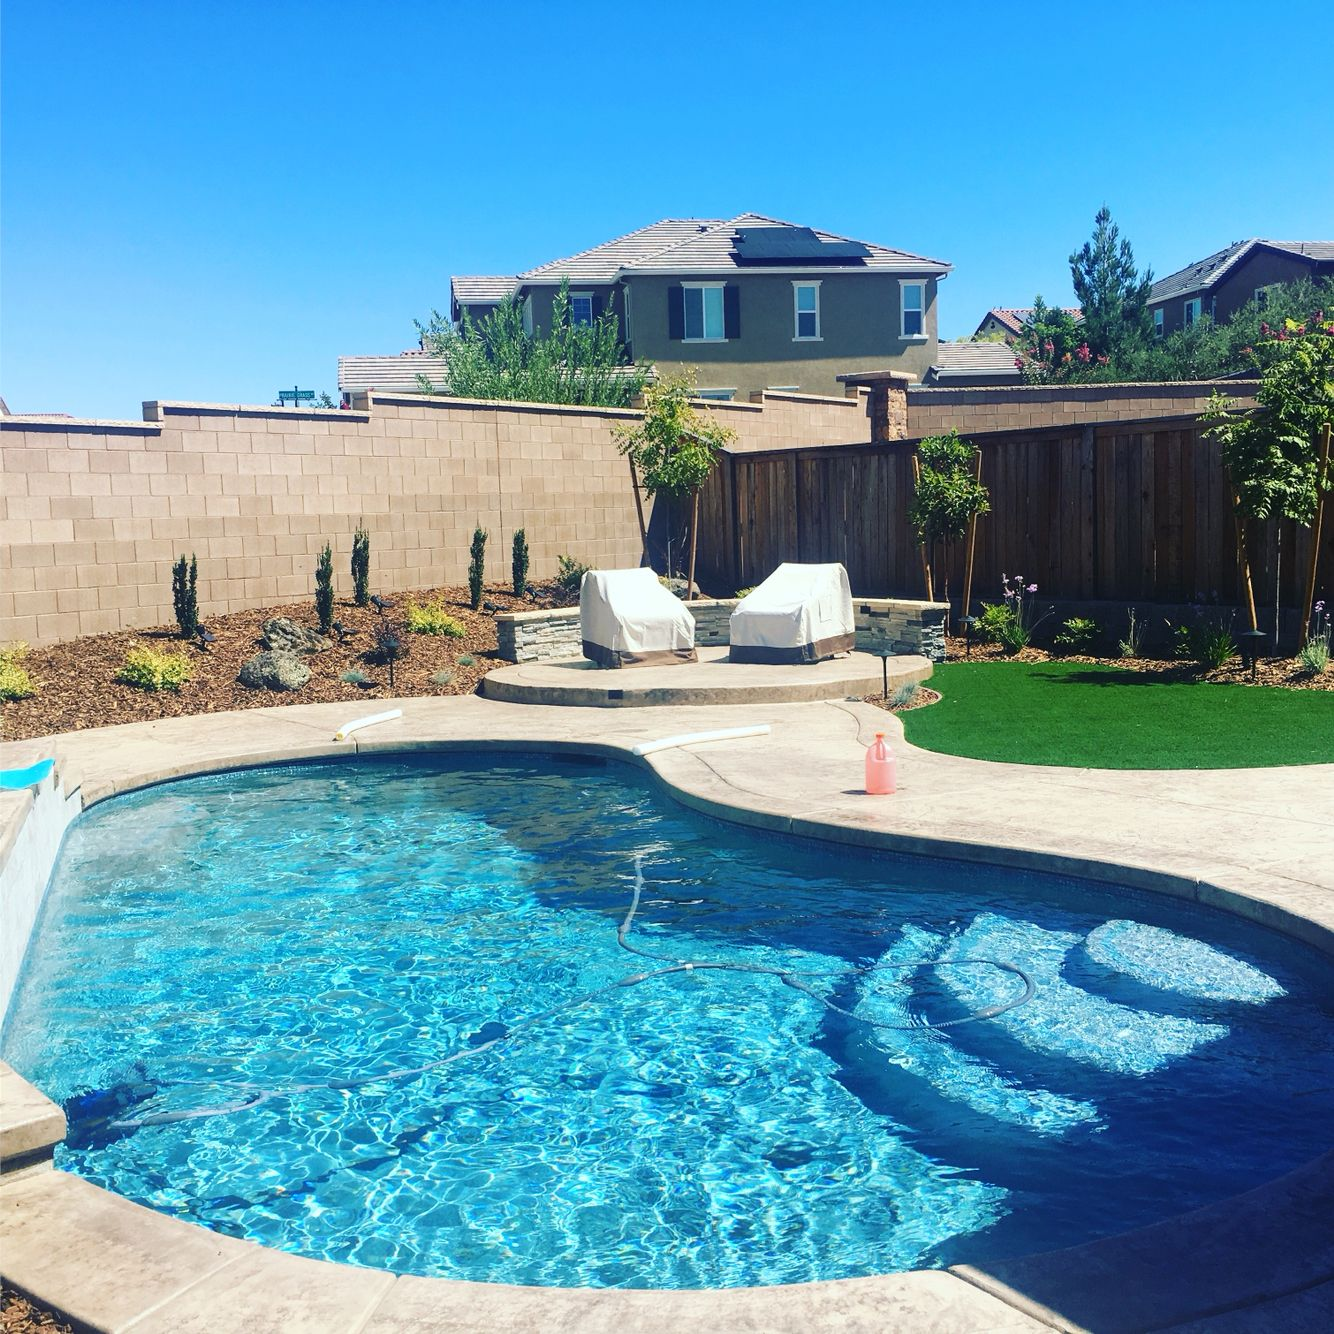 Pool only with pebble interior and water feature basic ...